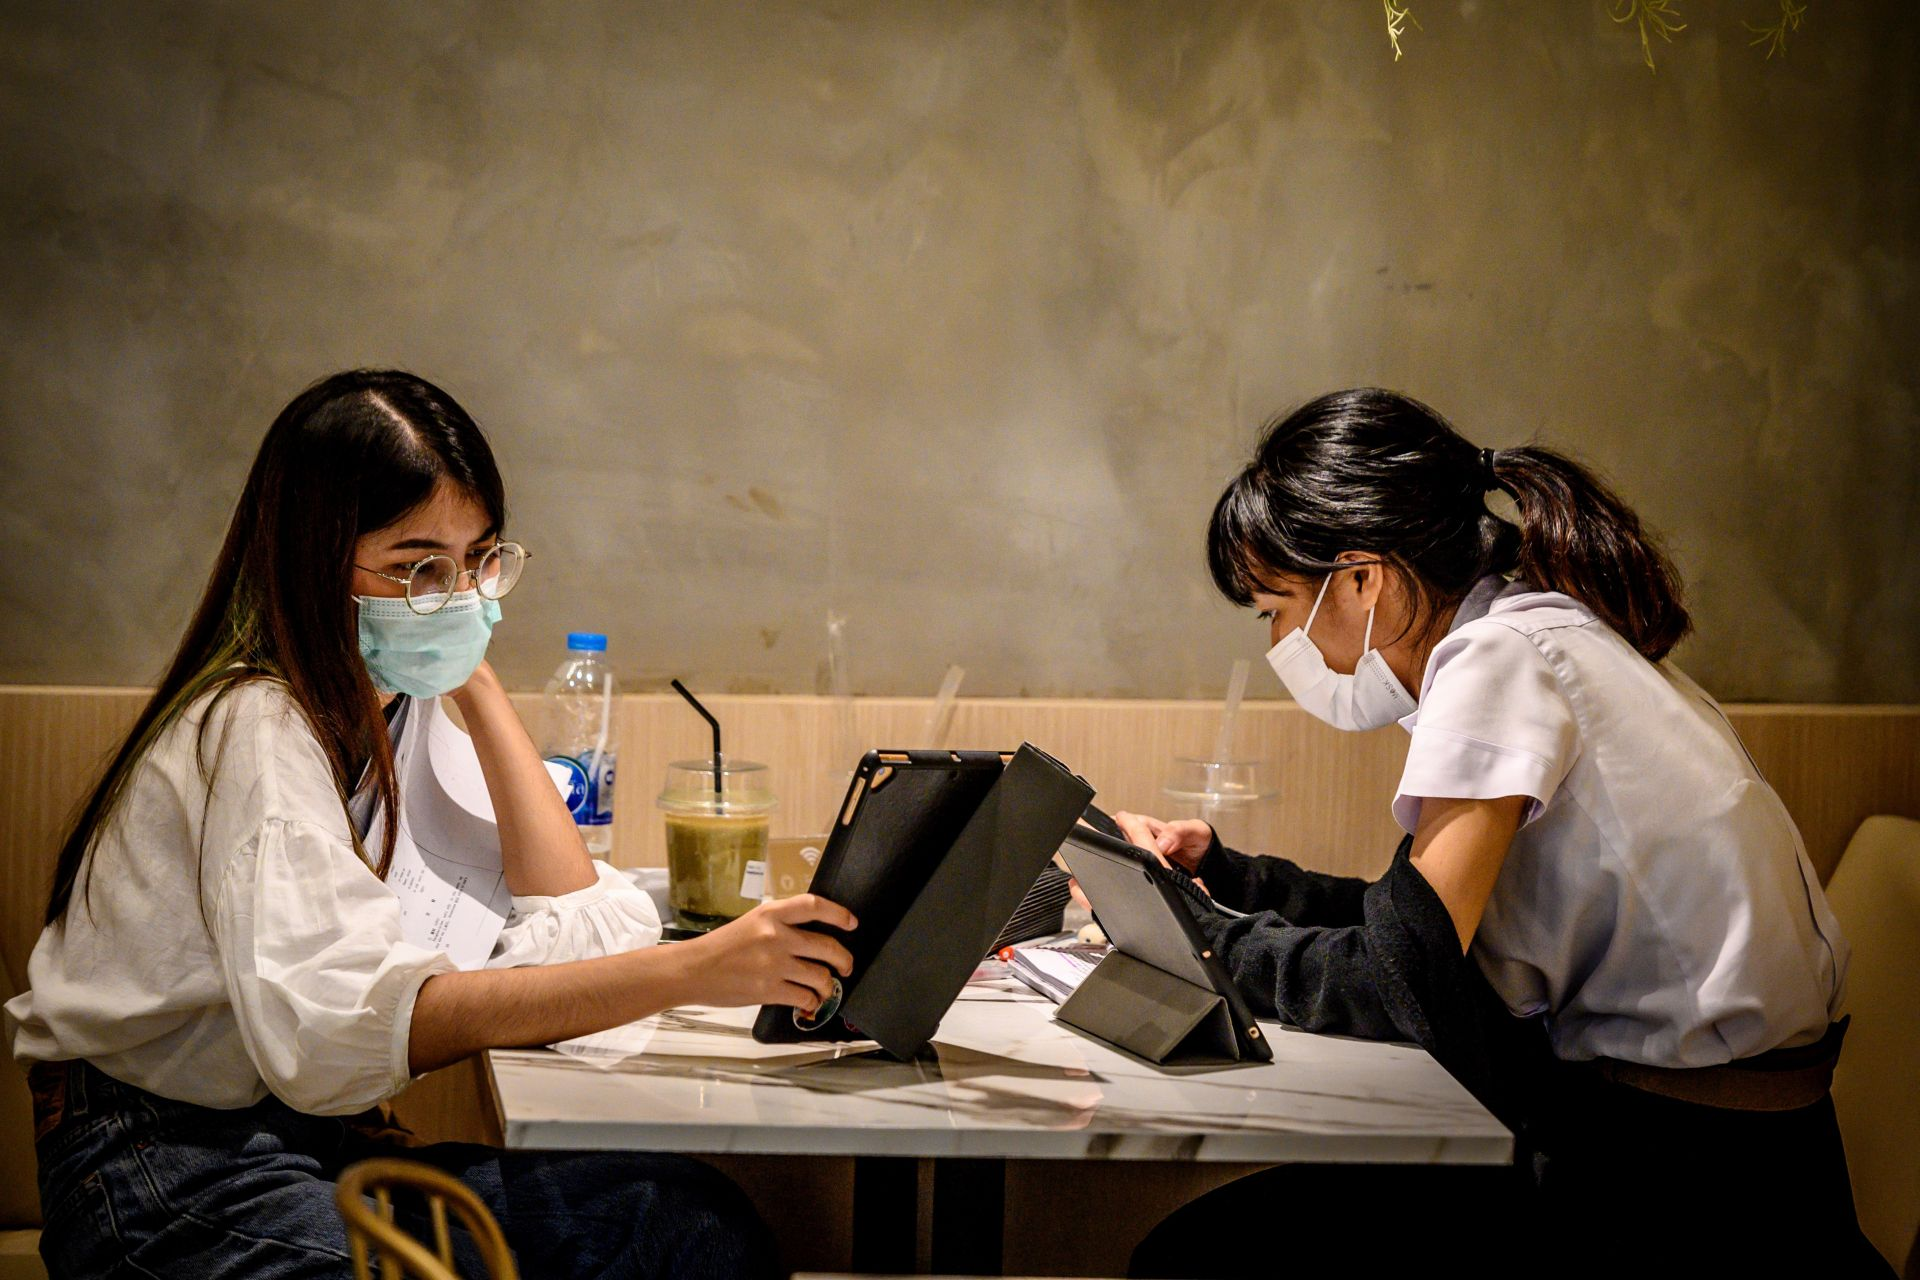 Students, wearing facemasks amid fears of the spread of the COVID-19 novel coronavirus, work in a coffee shop in Bangkok on March 3, 2020. - The world has entered uncharted territory in its battle against the deadly coronavirus, the UN health agency warned, as new infections dropped dramatically in China on March 3 but surged abroad with the US death toll rising to six. (Photo by Mladen ANTONOV / AFP)